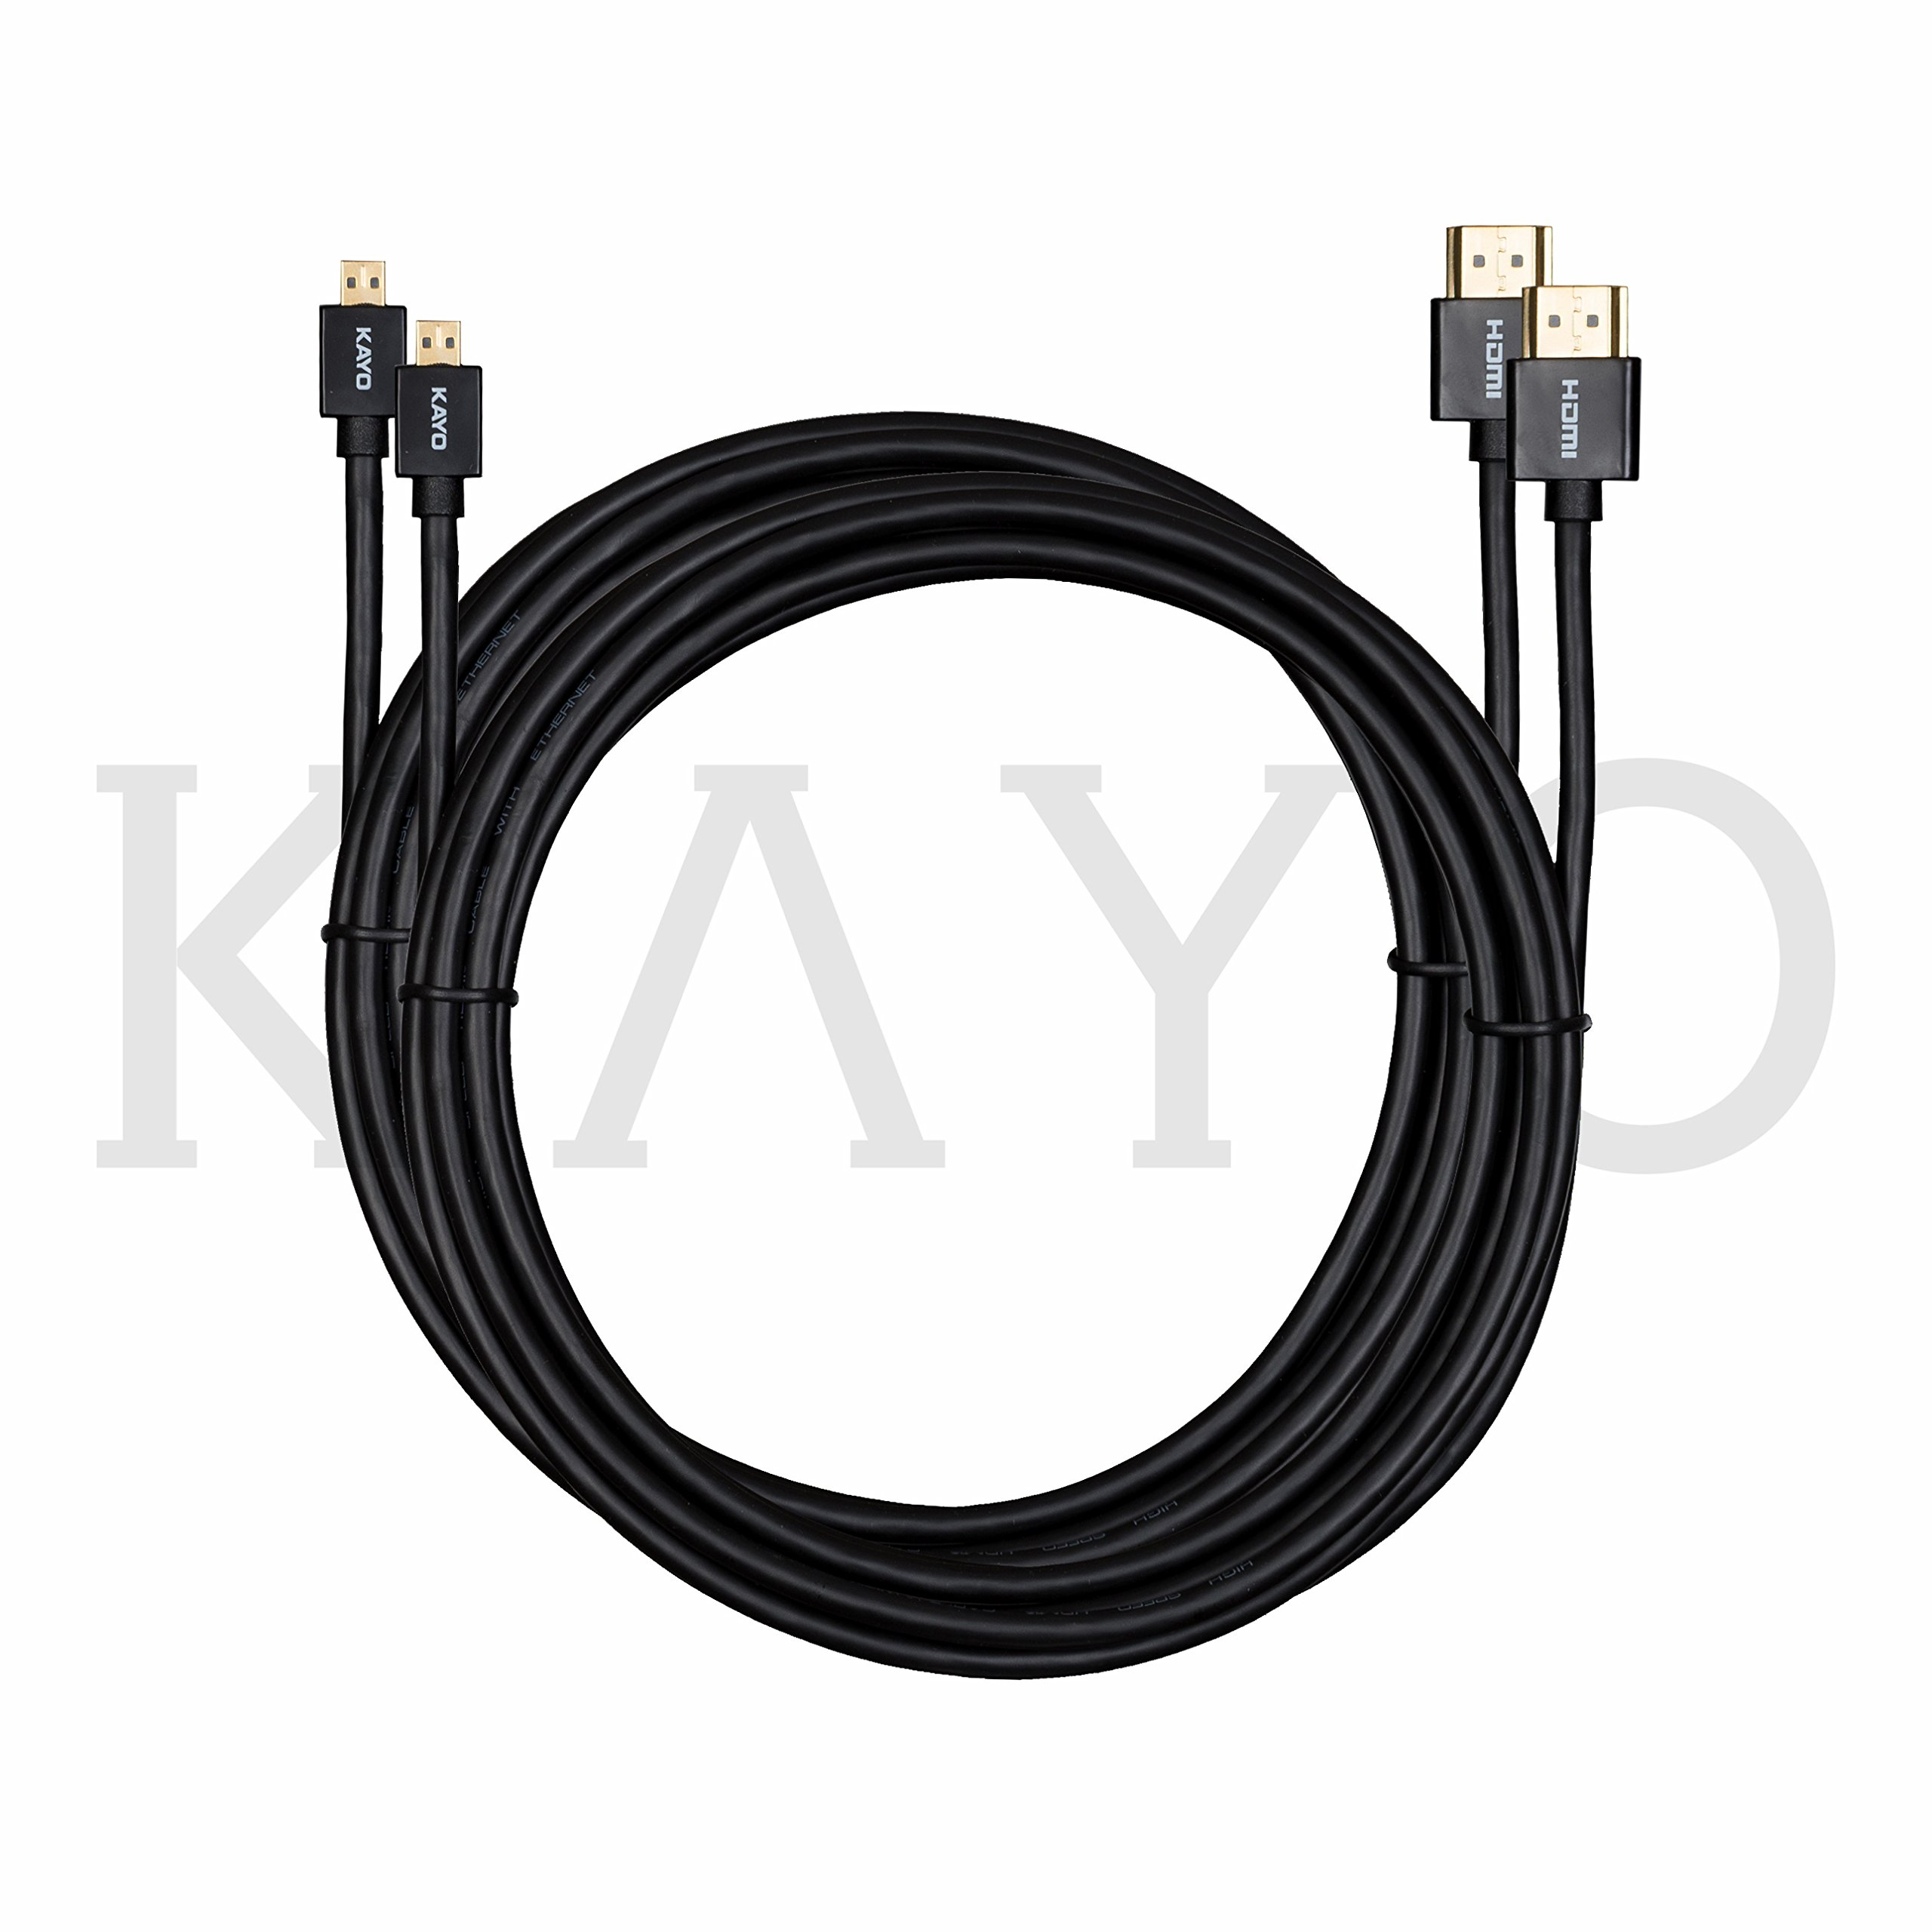 KAYO Hi-Speed SLIM Micro-HDMI (D) to HDMI (A) Cable 10FT -Pack of 2 | Supports 3D, 4K x 2K Video, resolution up to 1440 pixels